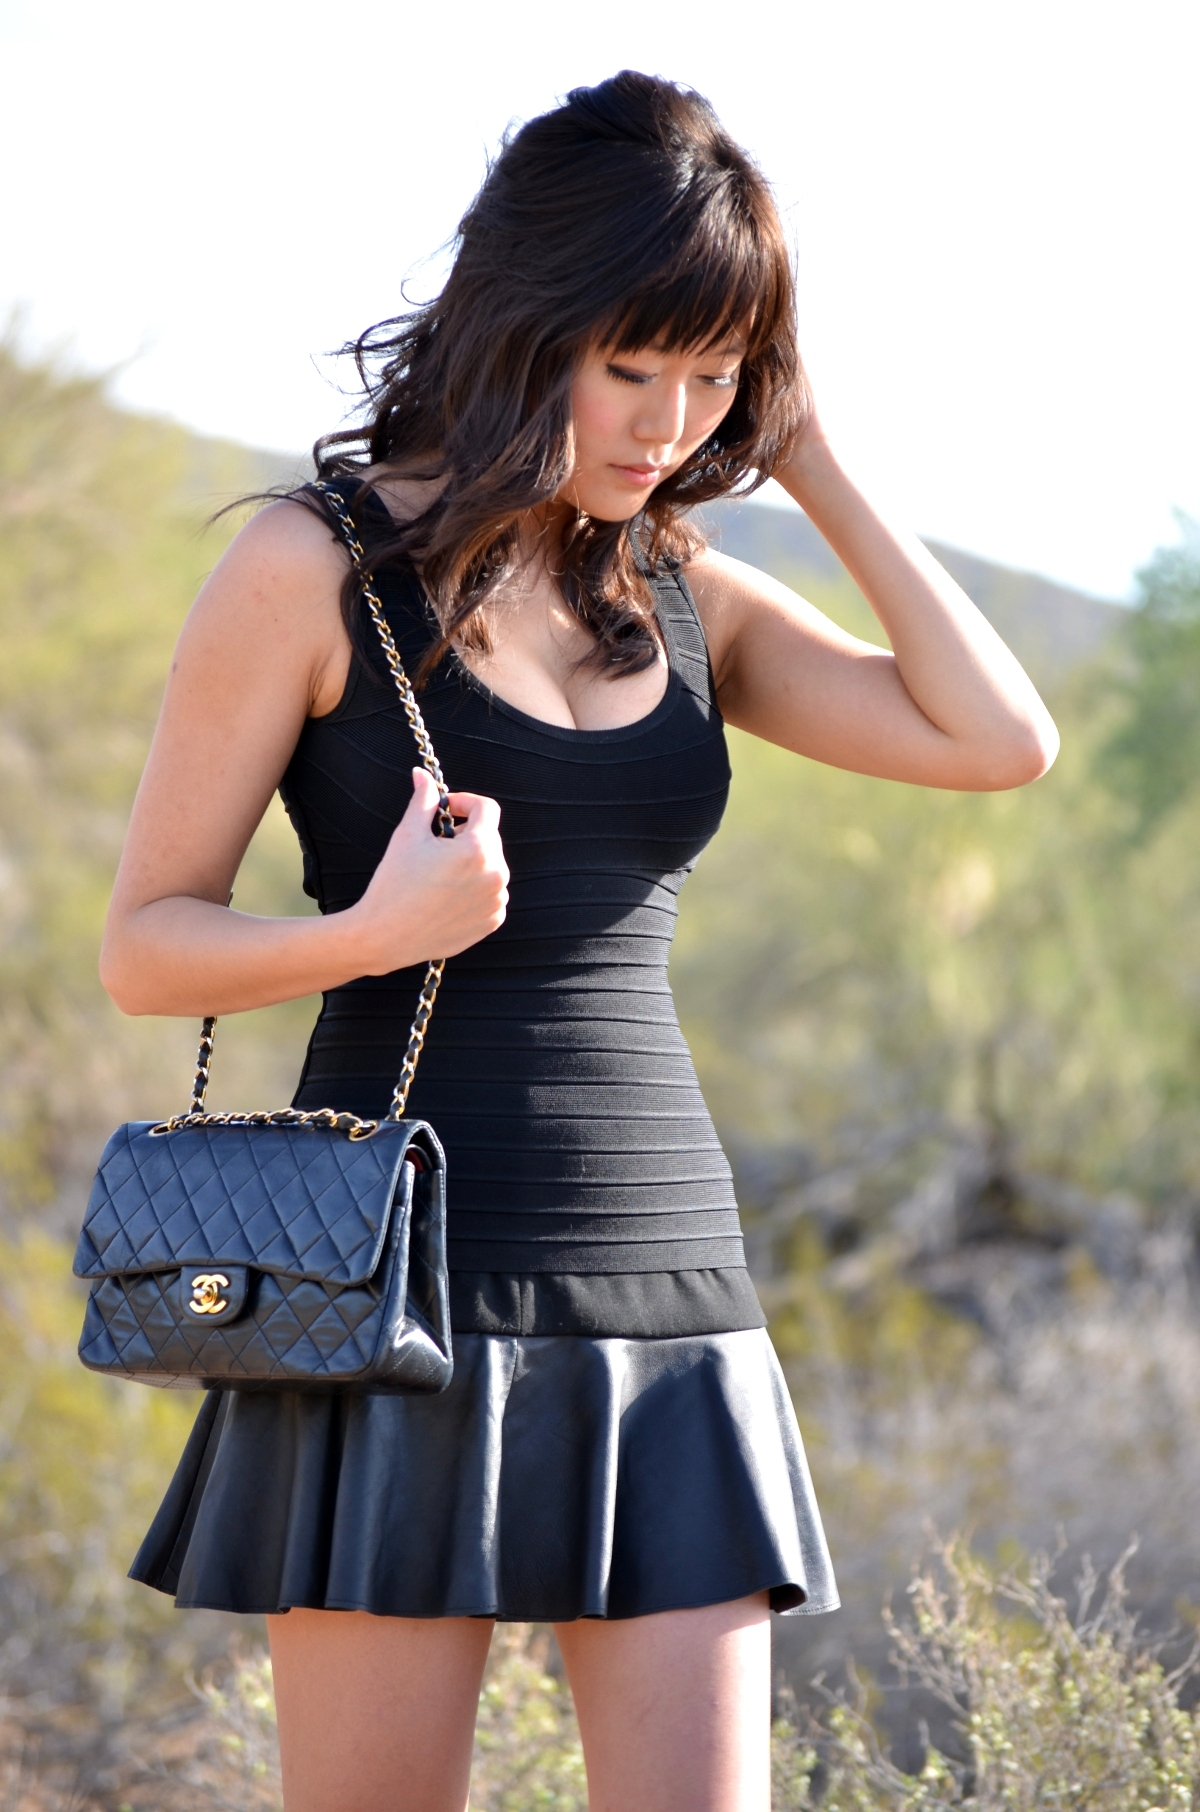 Herve Leger tight black top Asos leather flare skirt chanel vintage flap bag